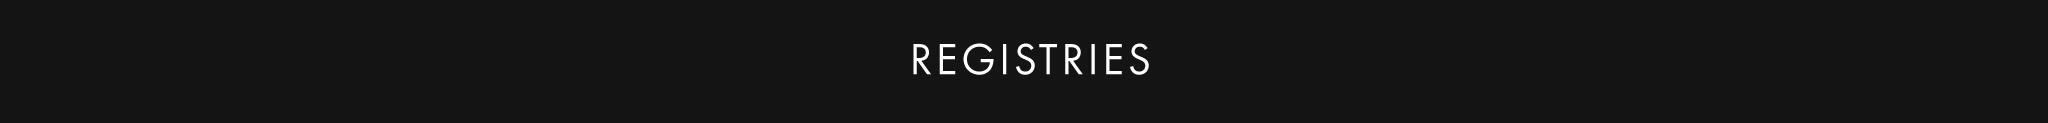 registries-header.jpg